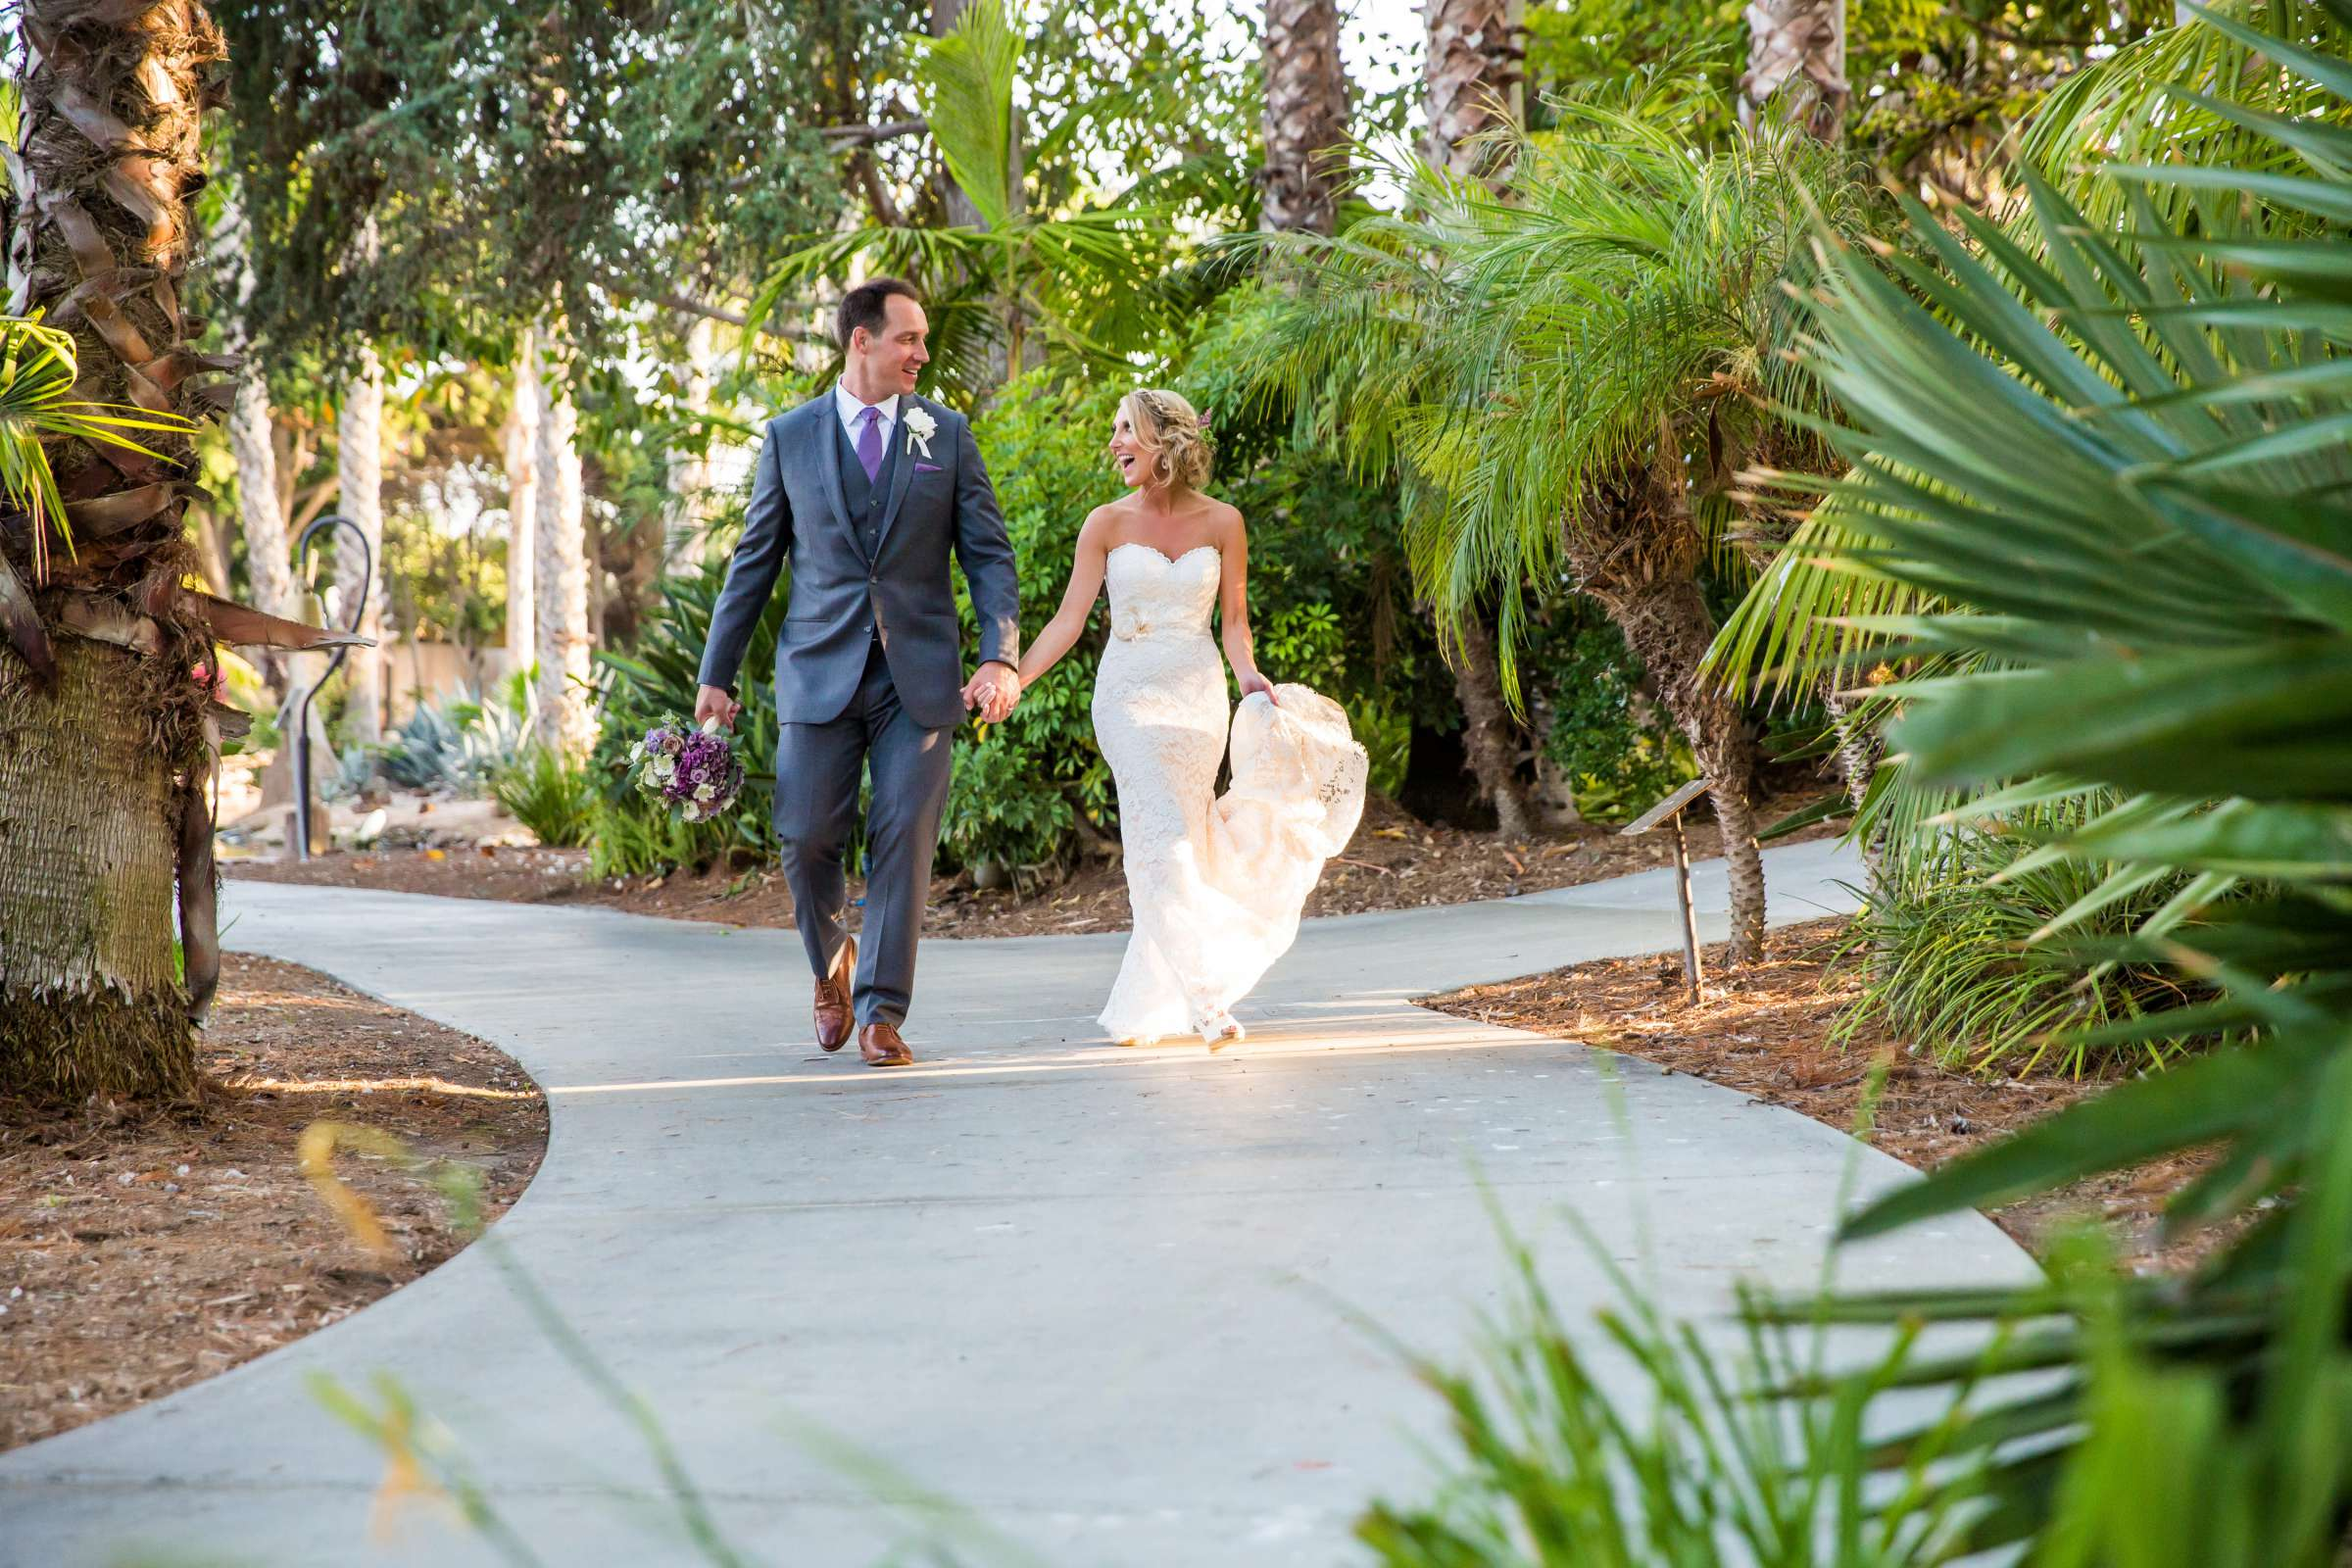 Paradise Point Wedding, Kimberly and Michael Wedding Photo #16 by True Photography